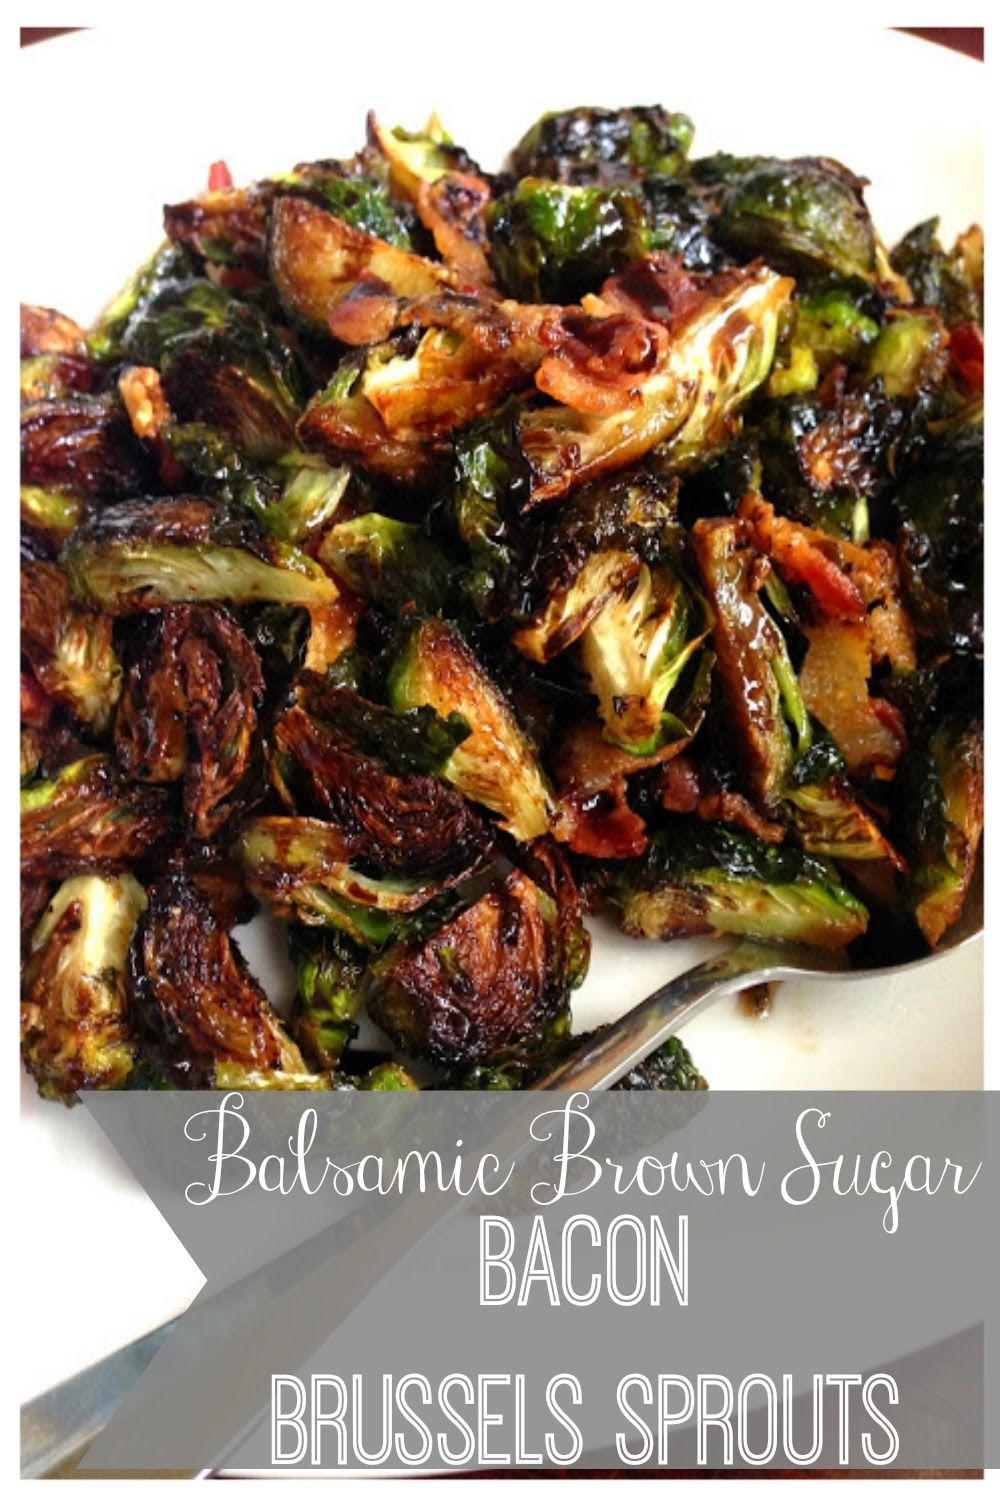 Balsamic Brown Sugar Brussels Sprouts - Sweetpea Lifestyle #brusselsproutrecipes